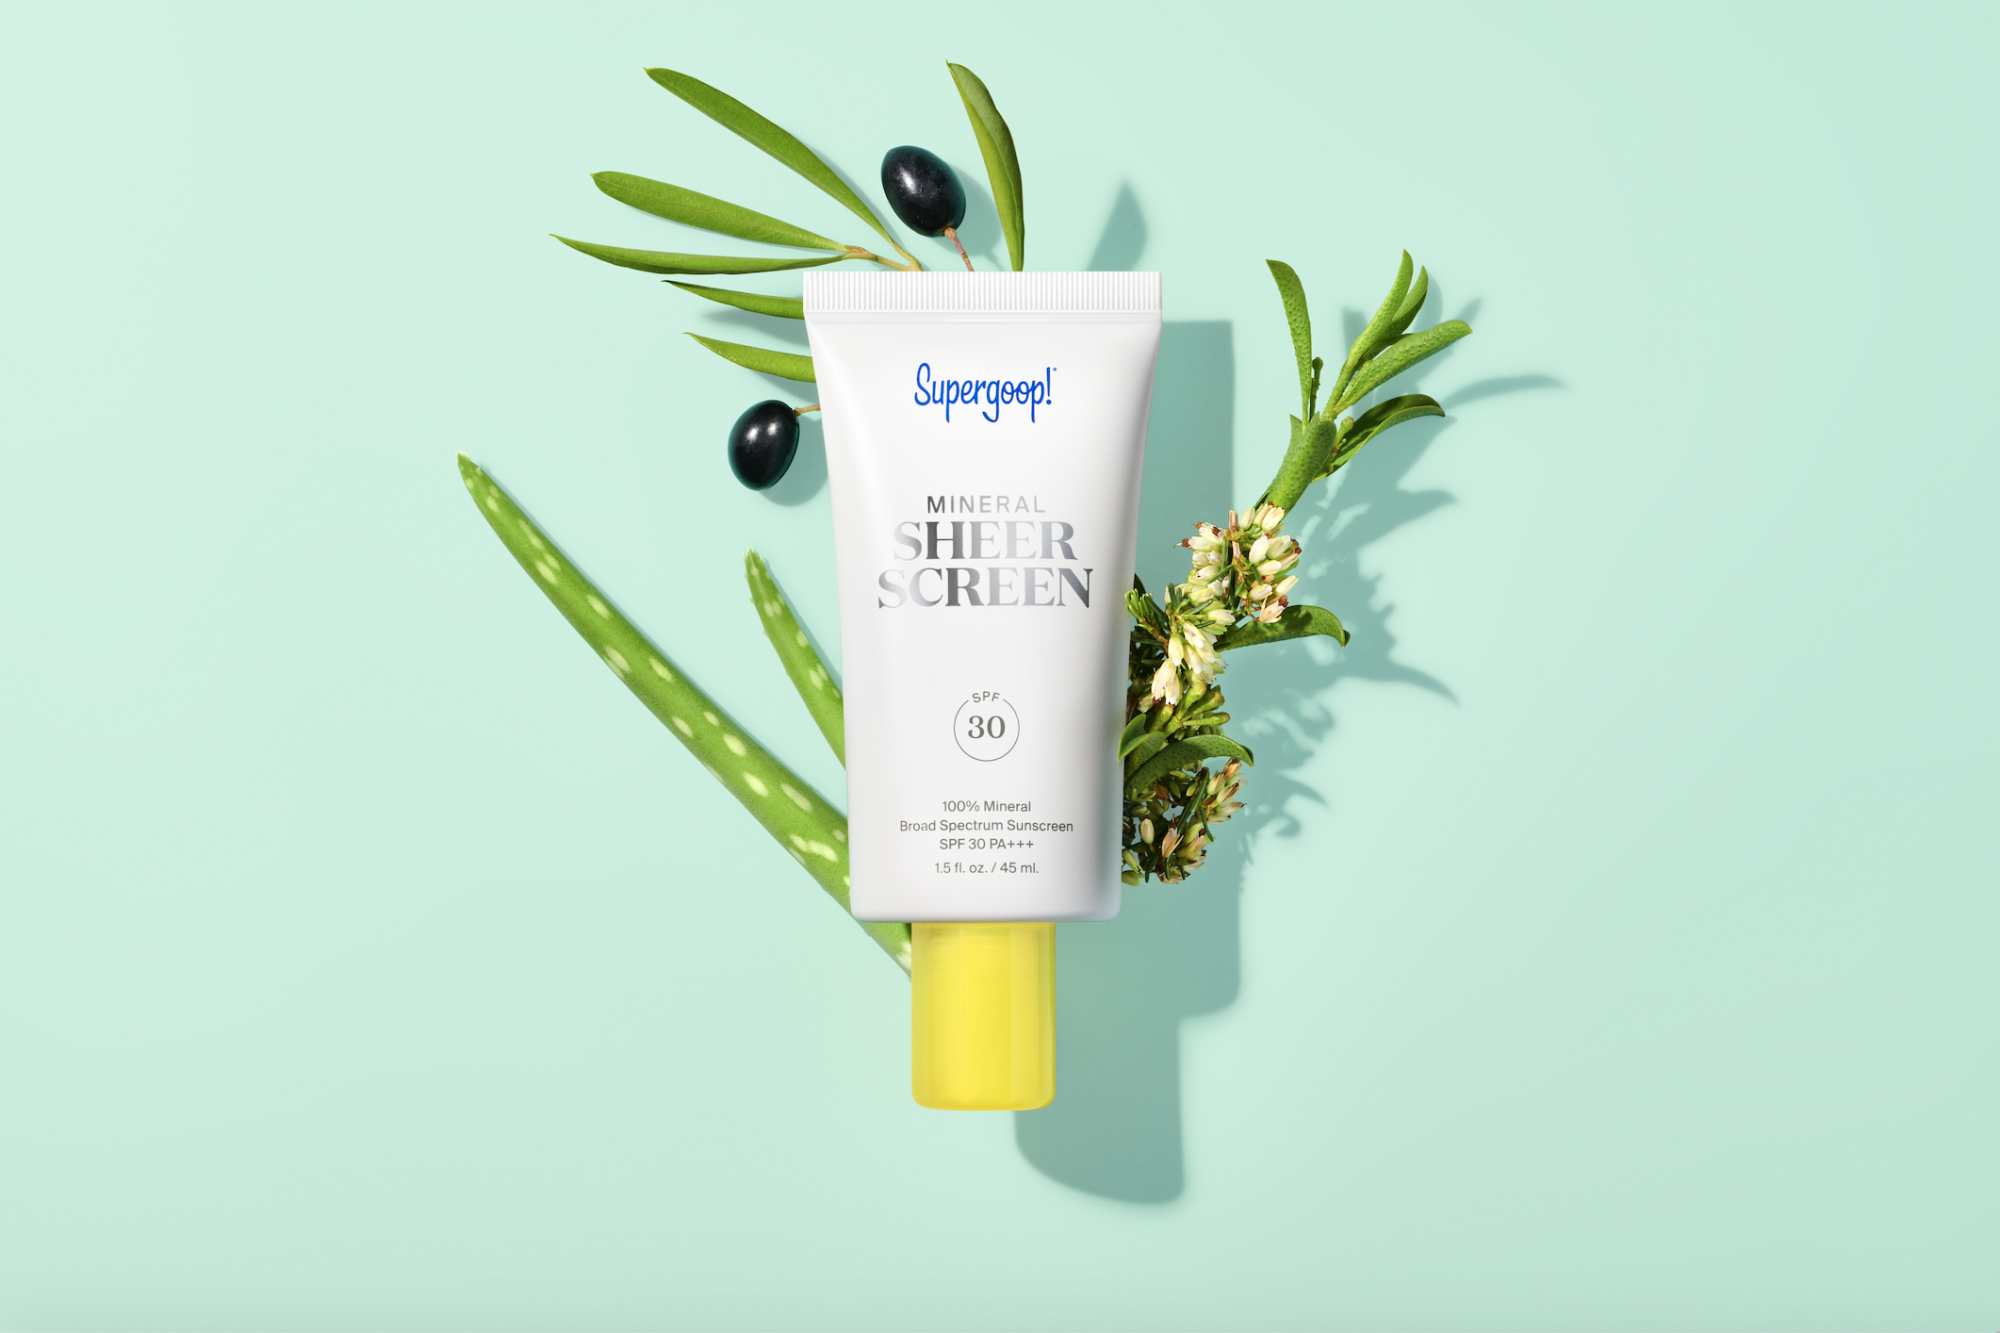 """Supergoop Mineral Sheerscreen SPF 30 is a sheer, weightless, 100% mineral daily sunscreen lotion that also helps shield skin from blue light. <a href=""""https://www.sephora.sg/products/supergoop-mineral-sheer-screen-spf-30/v/45ml"""">SHOP HERE</a>"""